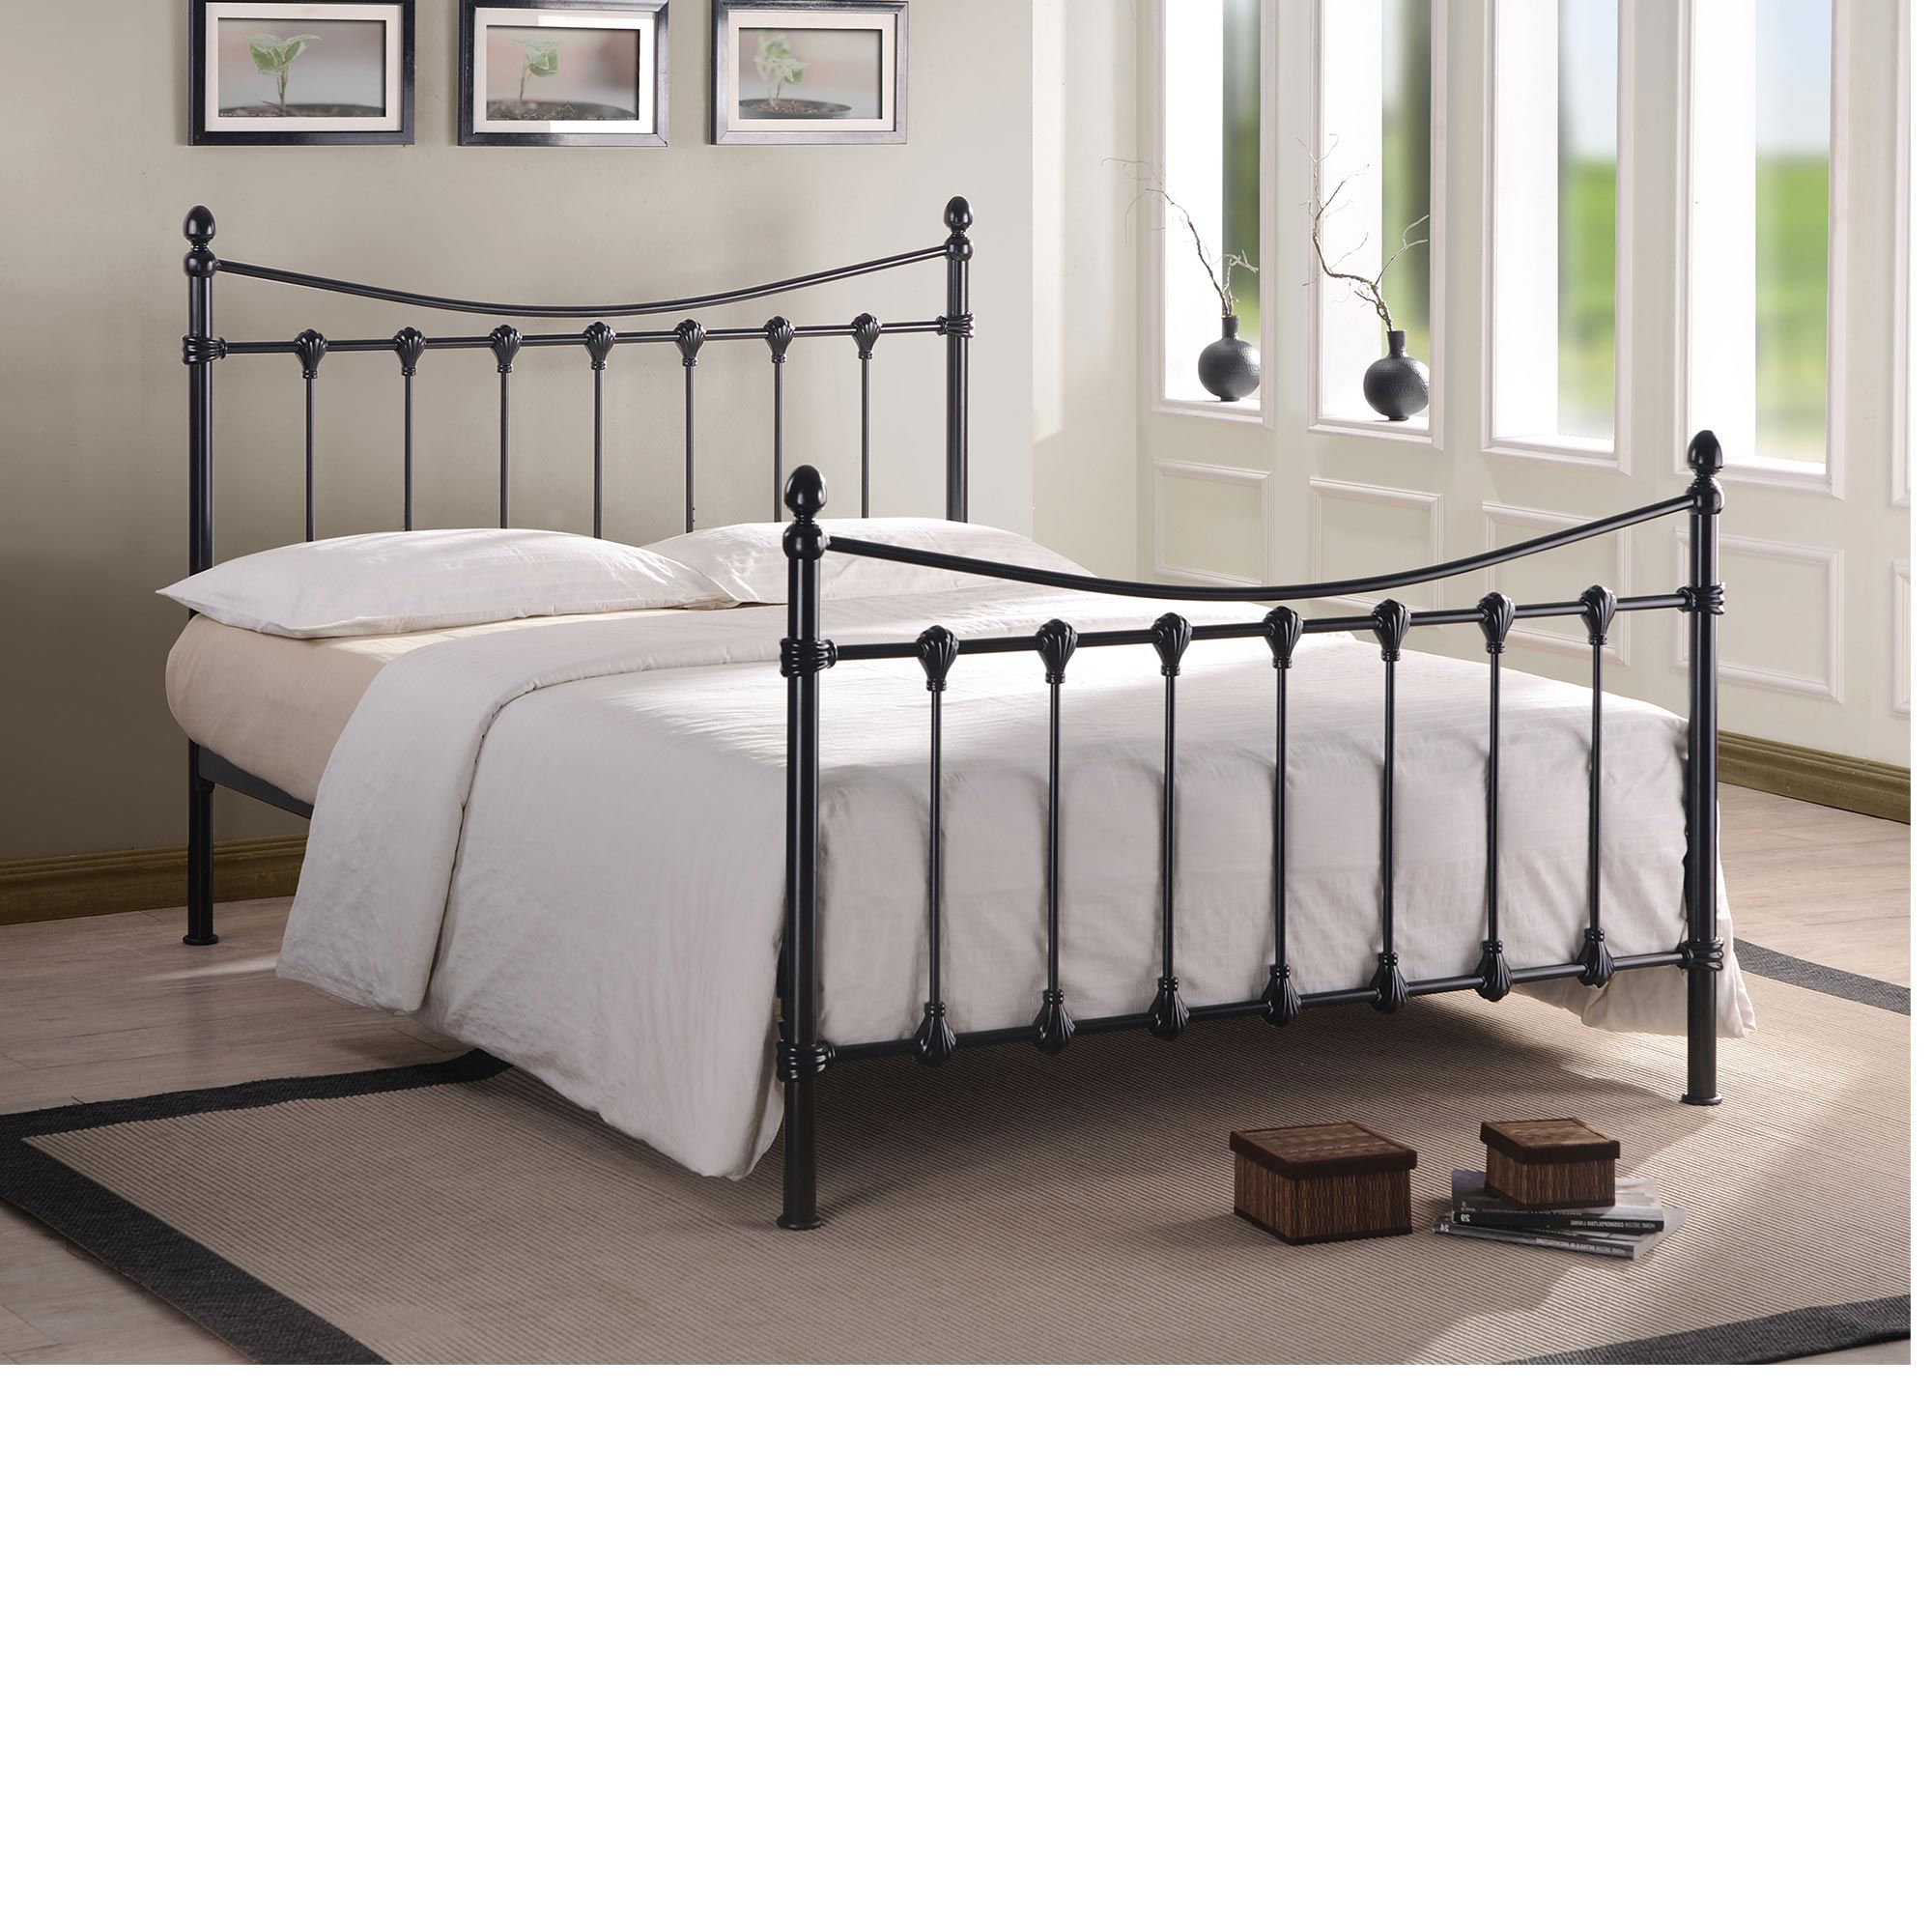 Black Metal Queen Bed Frame with white bedding and grey